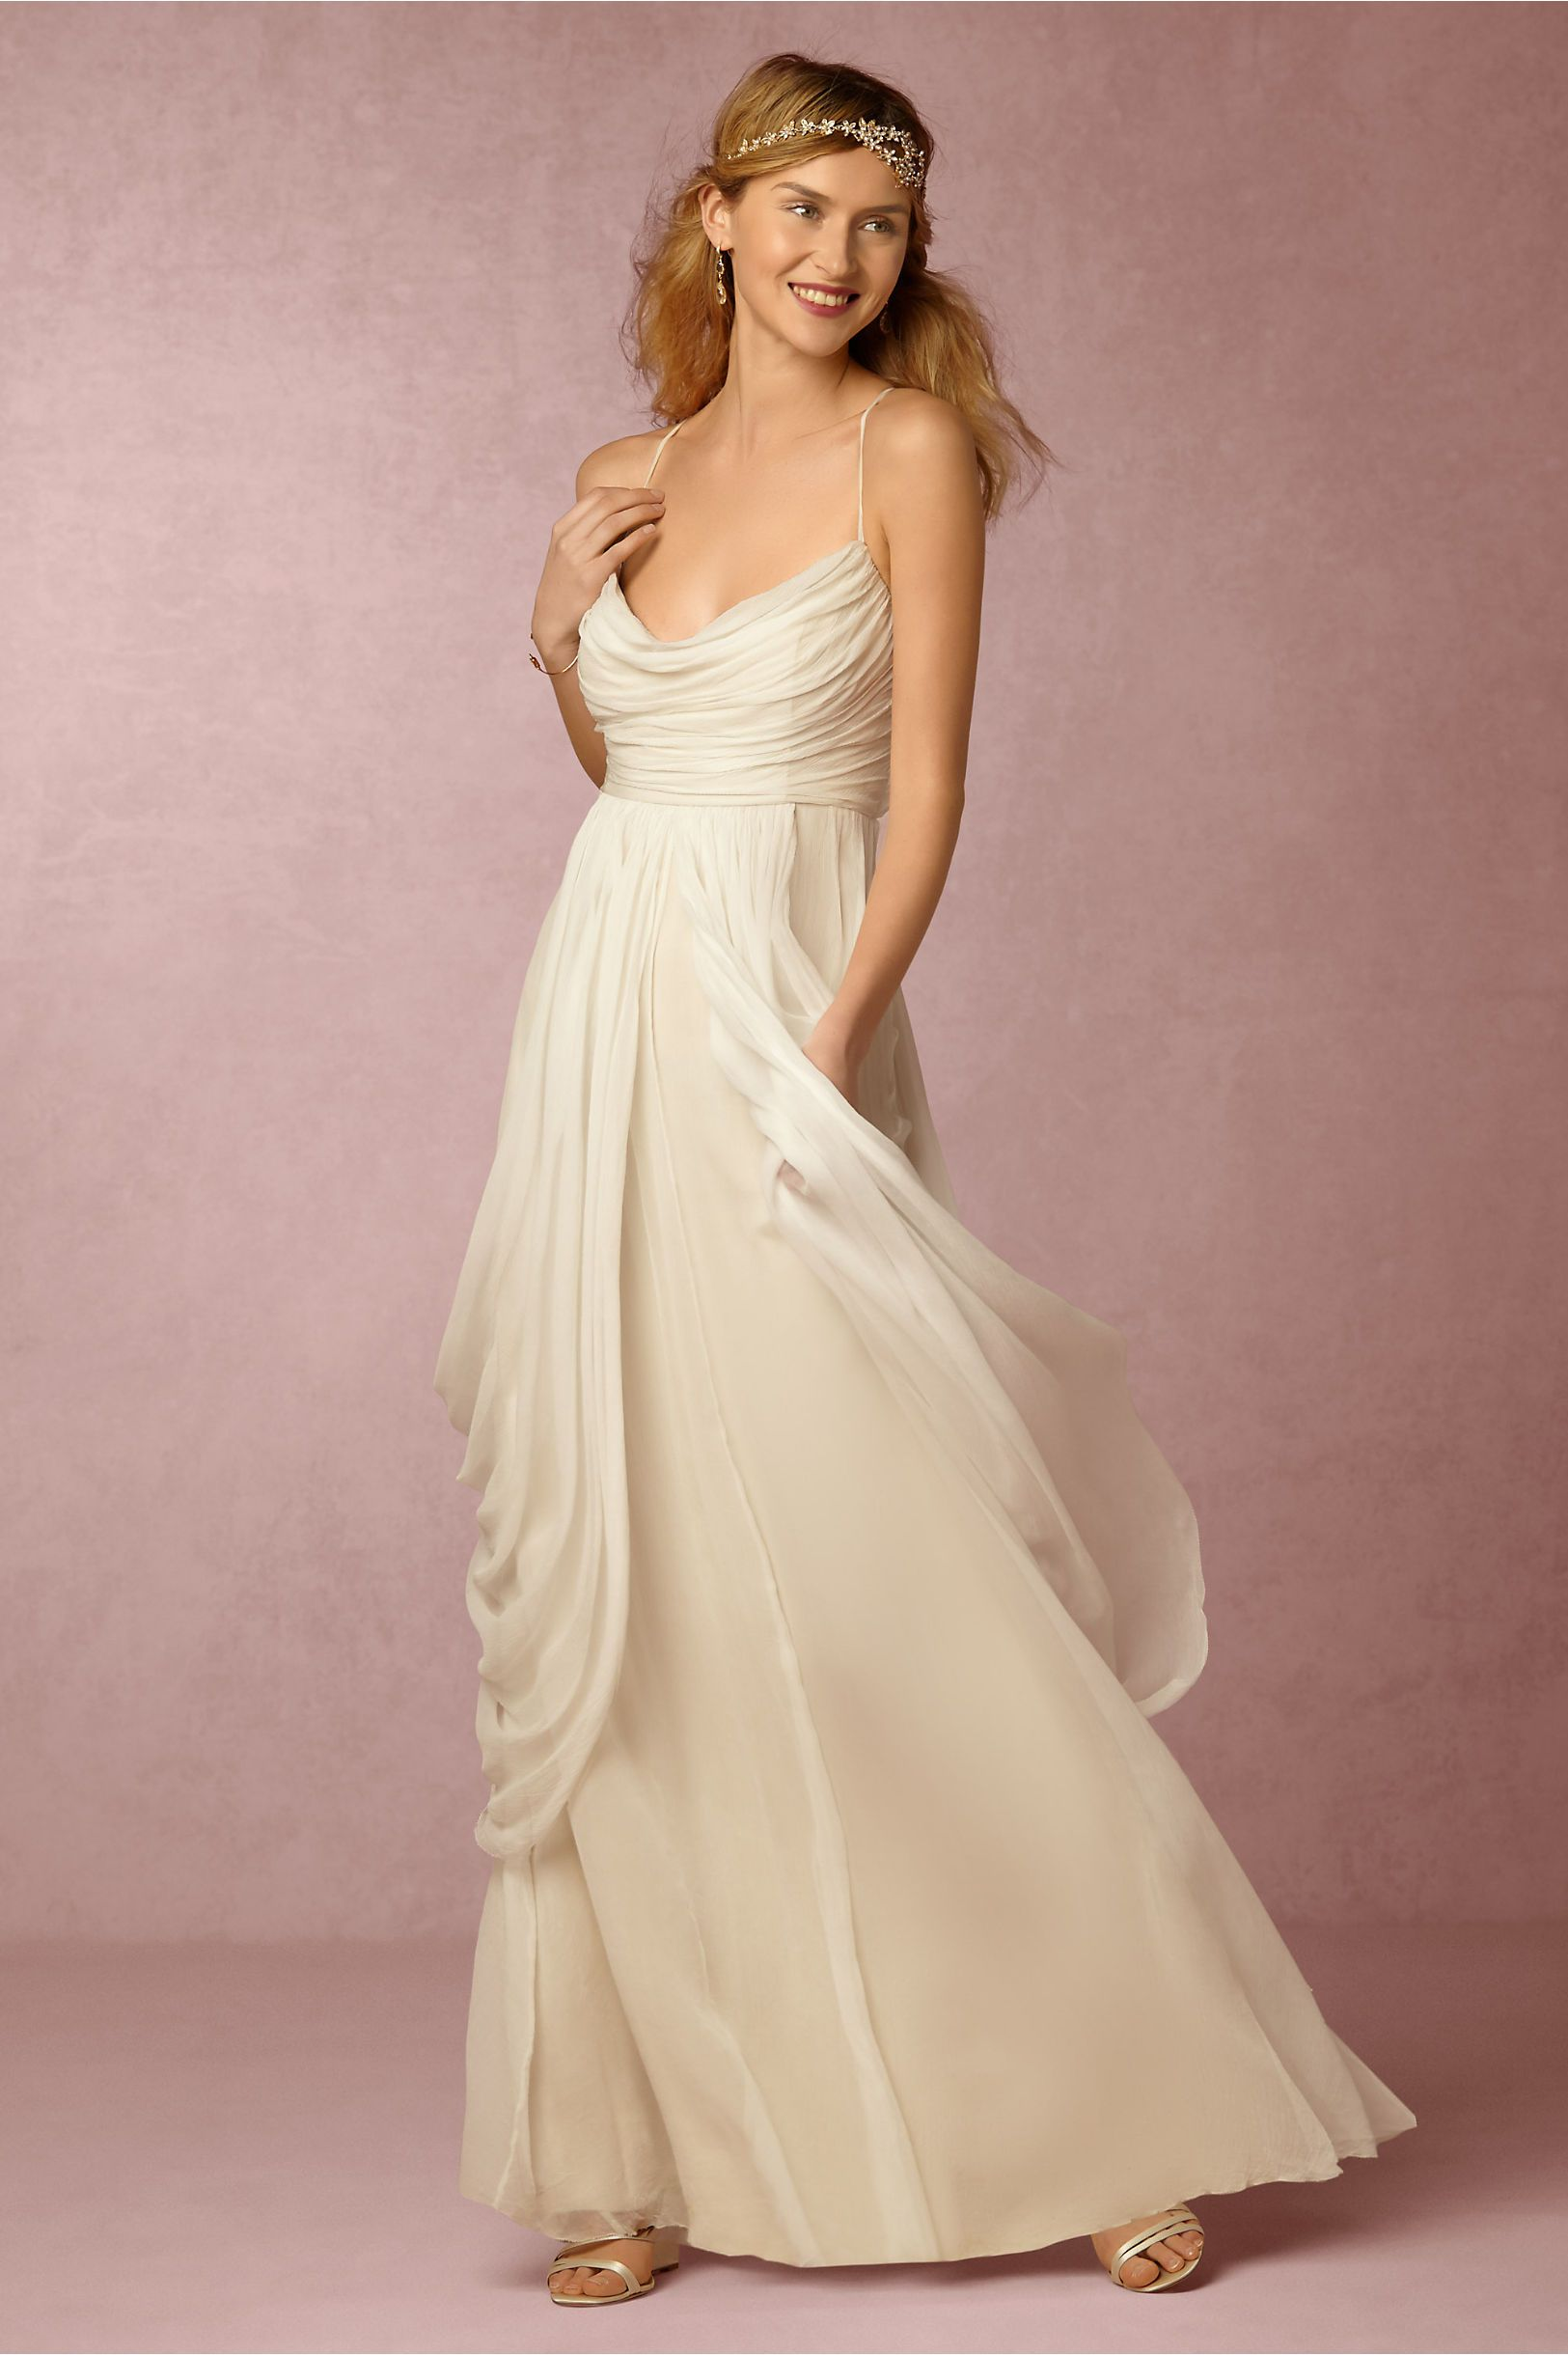 Can T Afford It Get Over Two Temperley London Gowns For Under 1500 Wedding Weekwedding